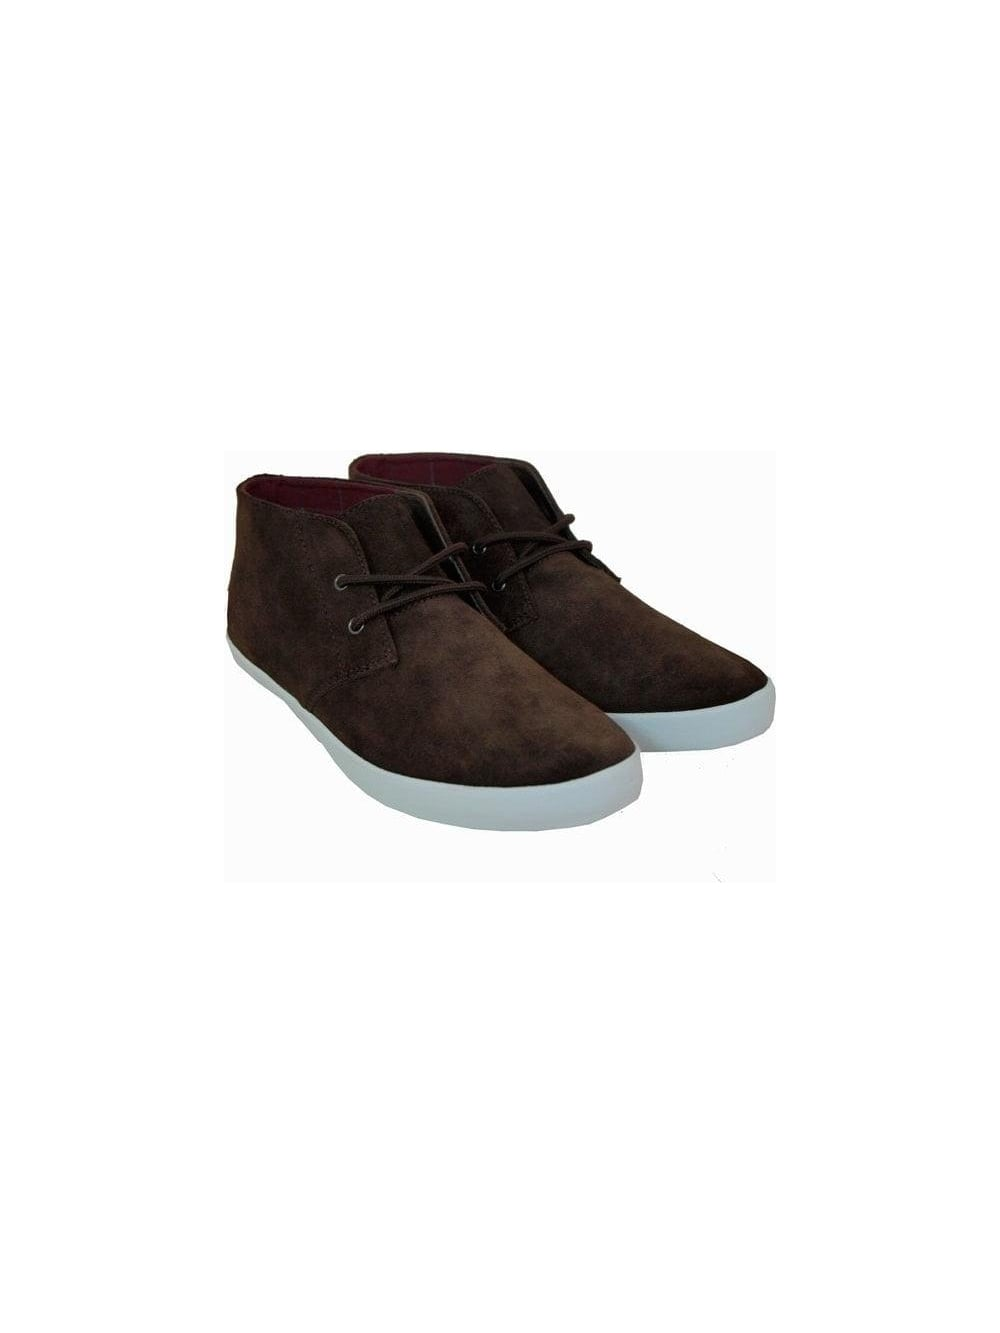 grossiste ddcc6 6fb9d Byron Mid Suede Boots - Chocolate